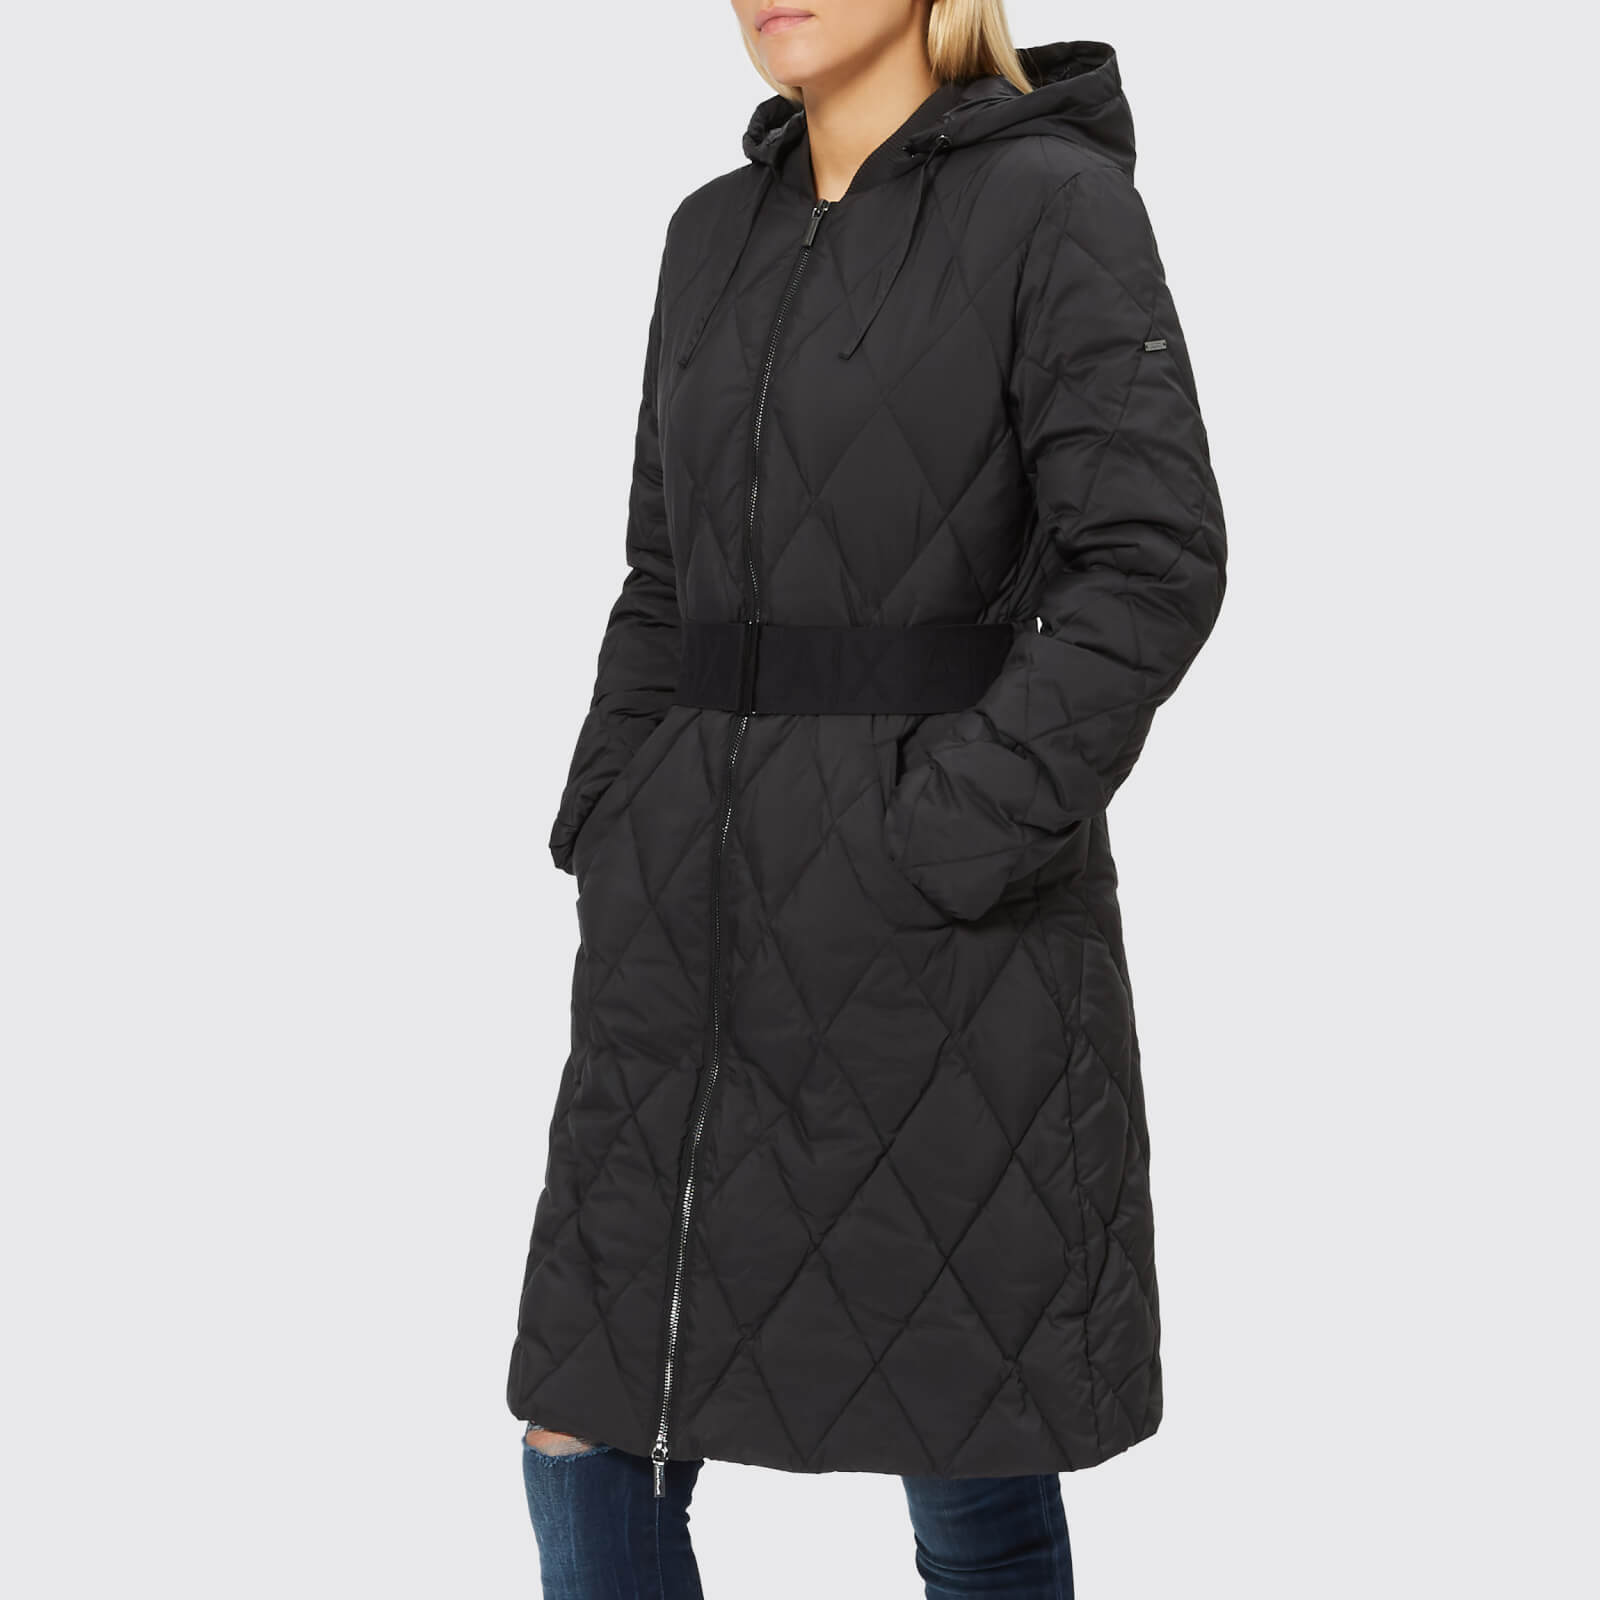 06843a546 Armani Exchange Women's Long Quilted Down Coat - Black